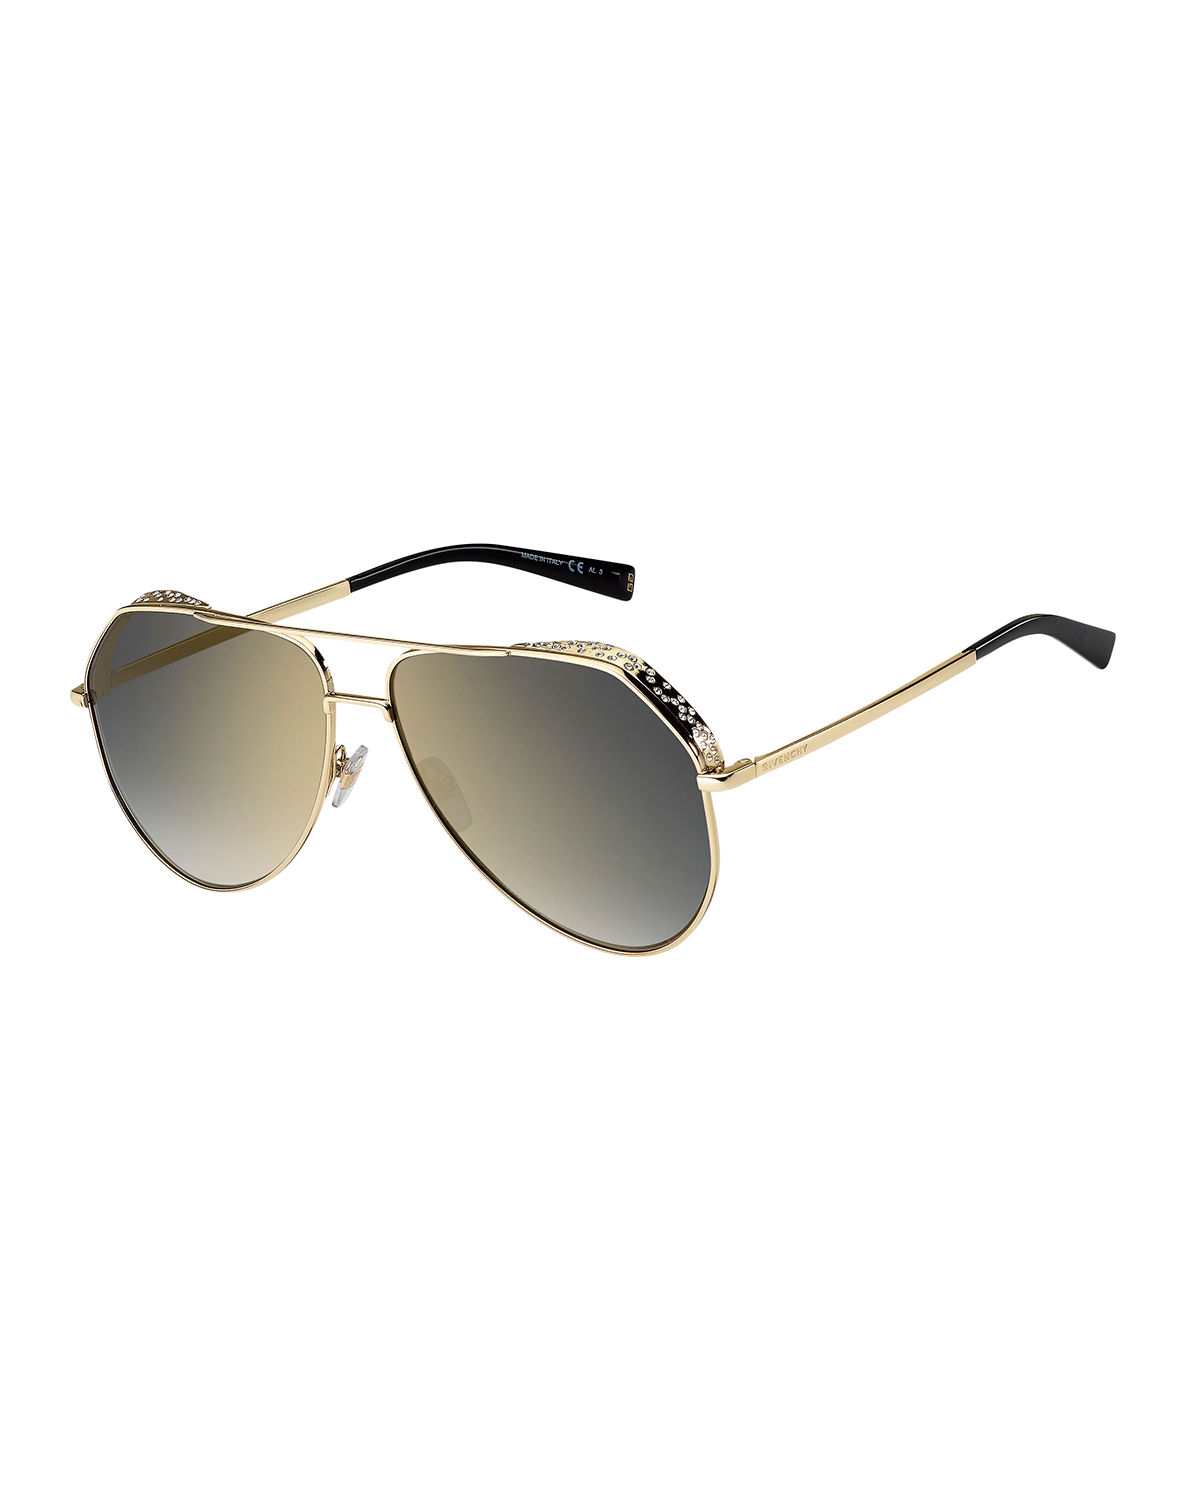 Givenchy STAINLESS STEEL AVIATOR SUNGLASSES